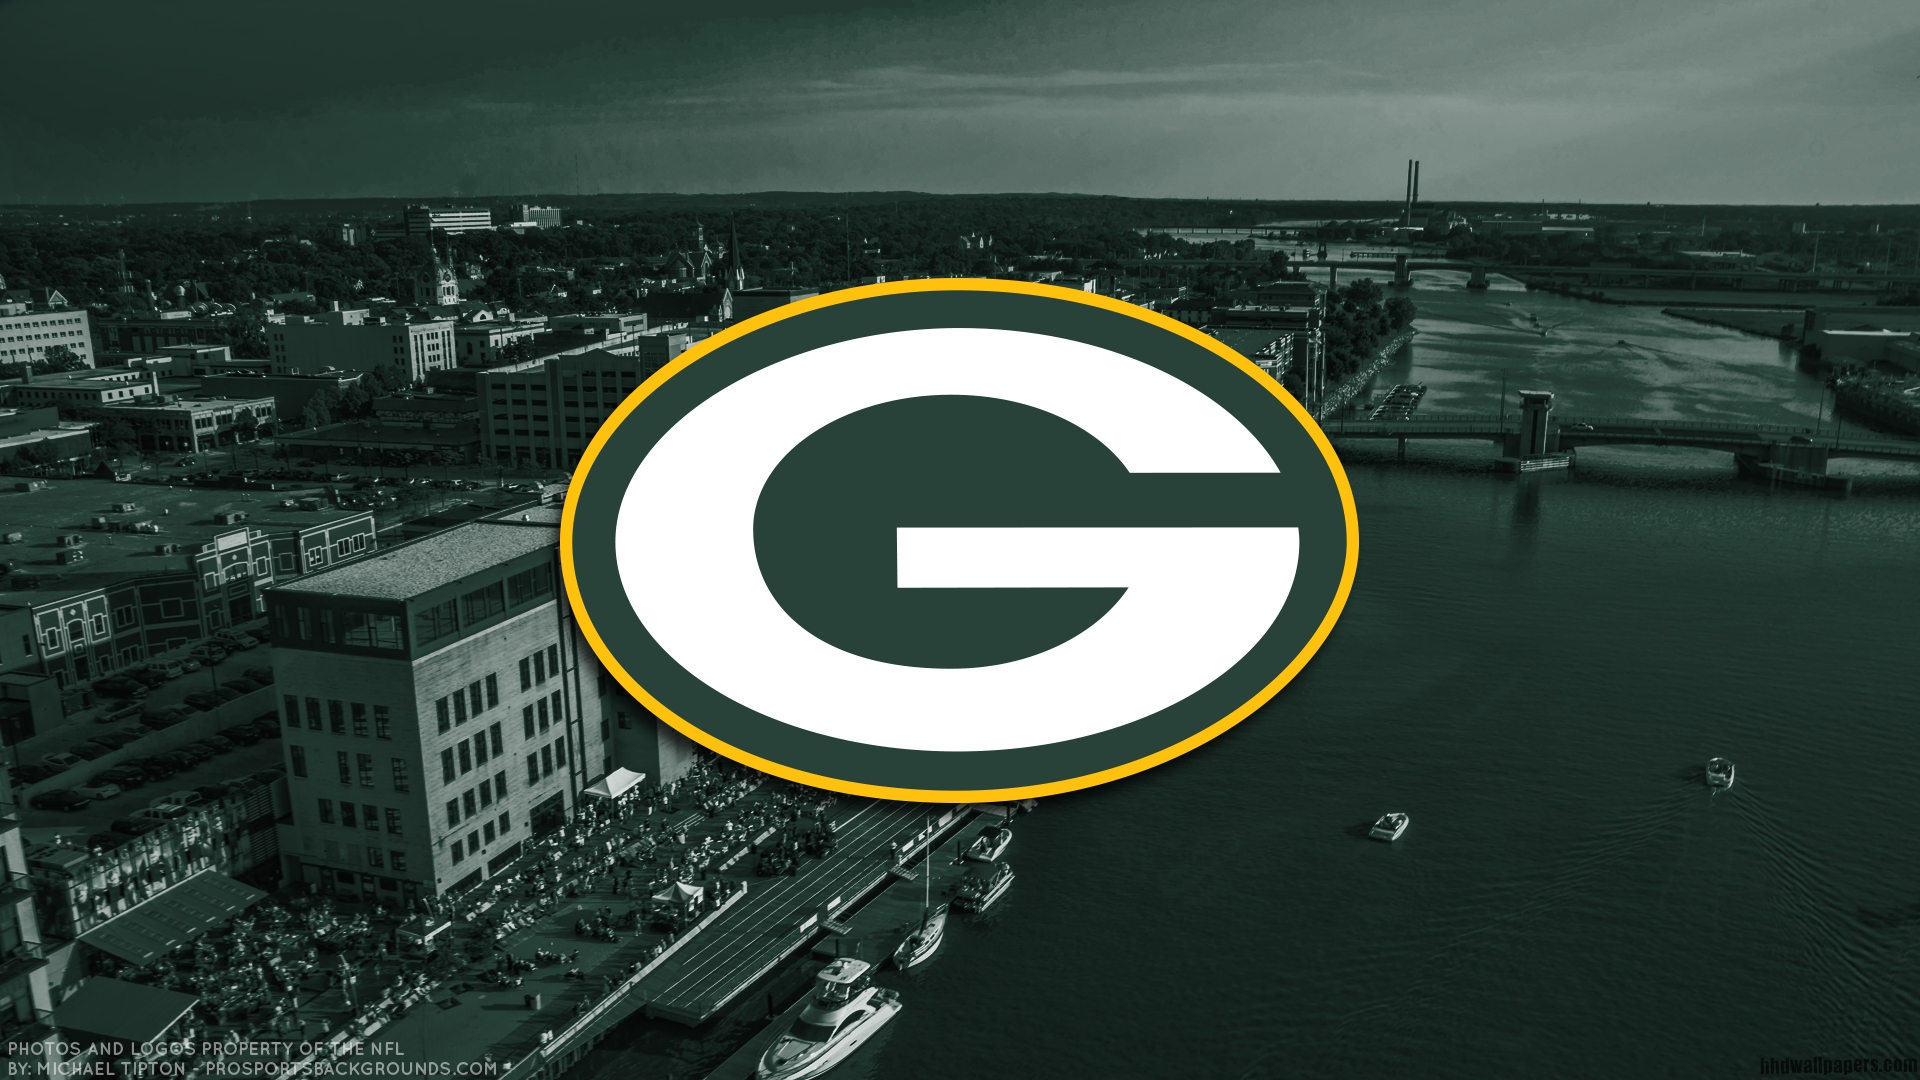 green bay packers football logo wallpaper - download hd wallpapers